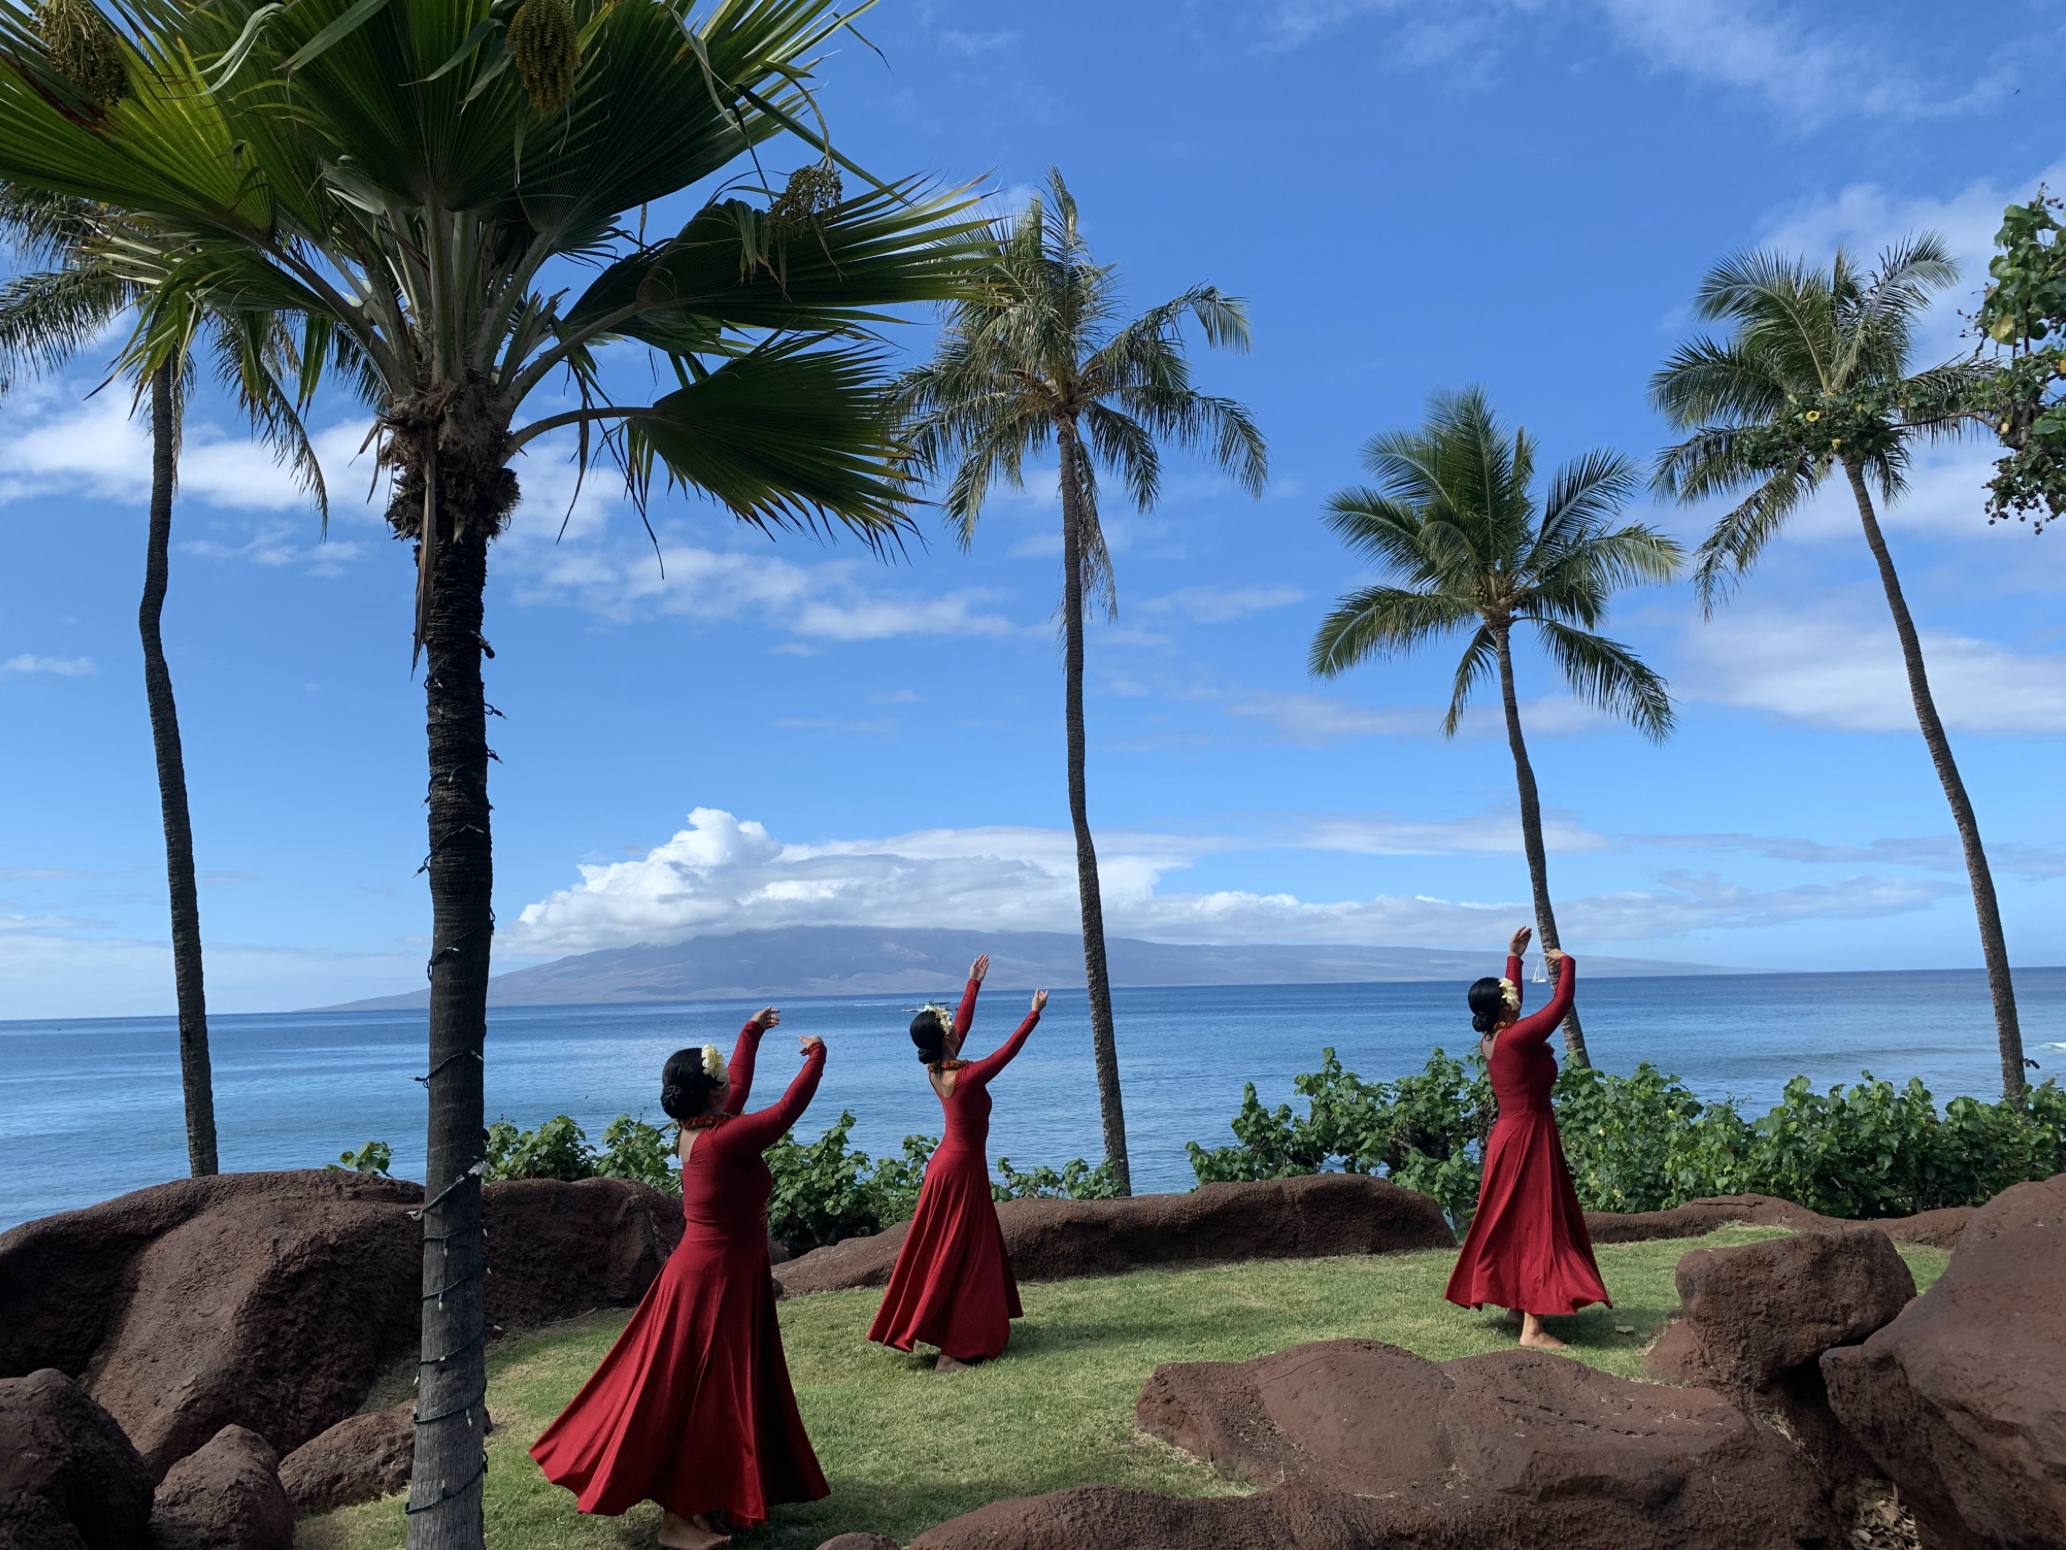 Tourism Report: Maui Visitors for Dec. 2020 Down 67.2 Percent from 2019